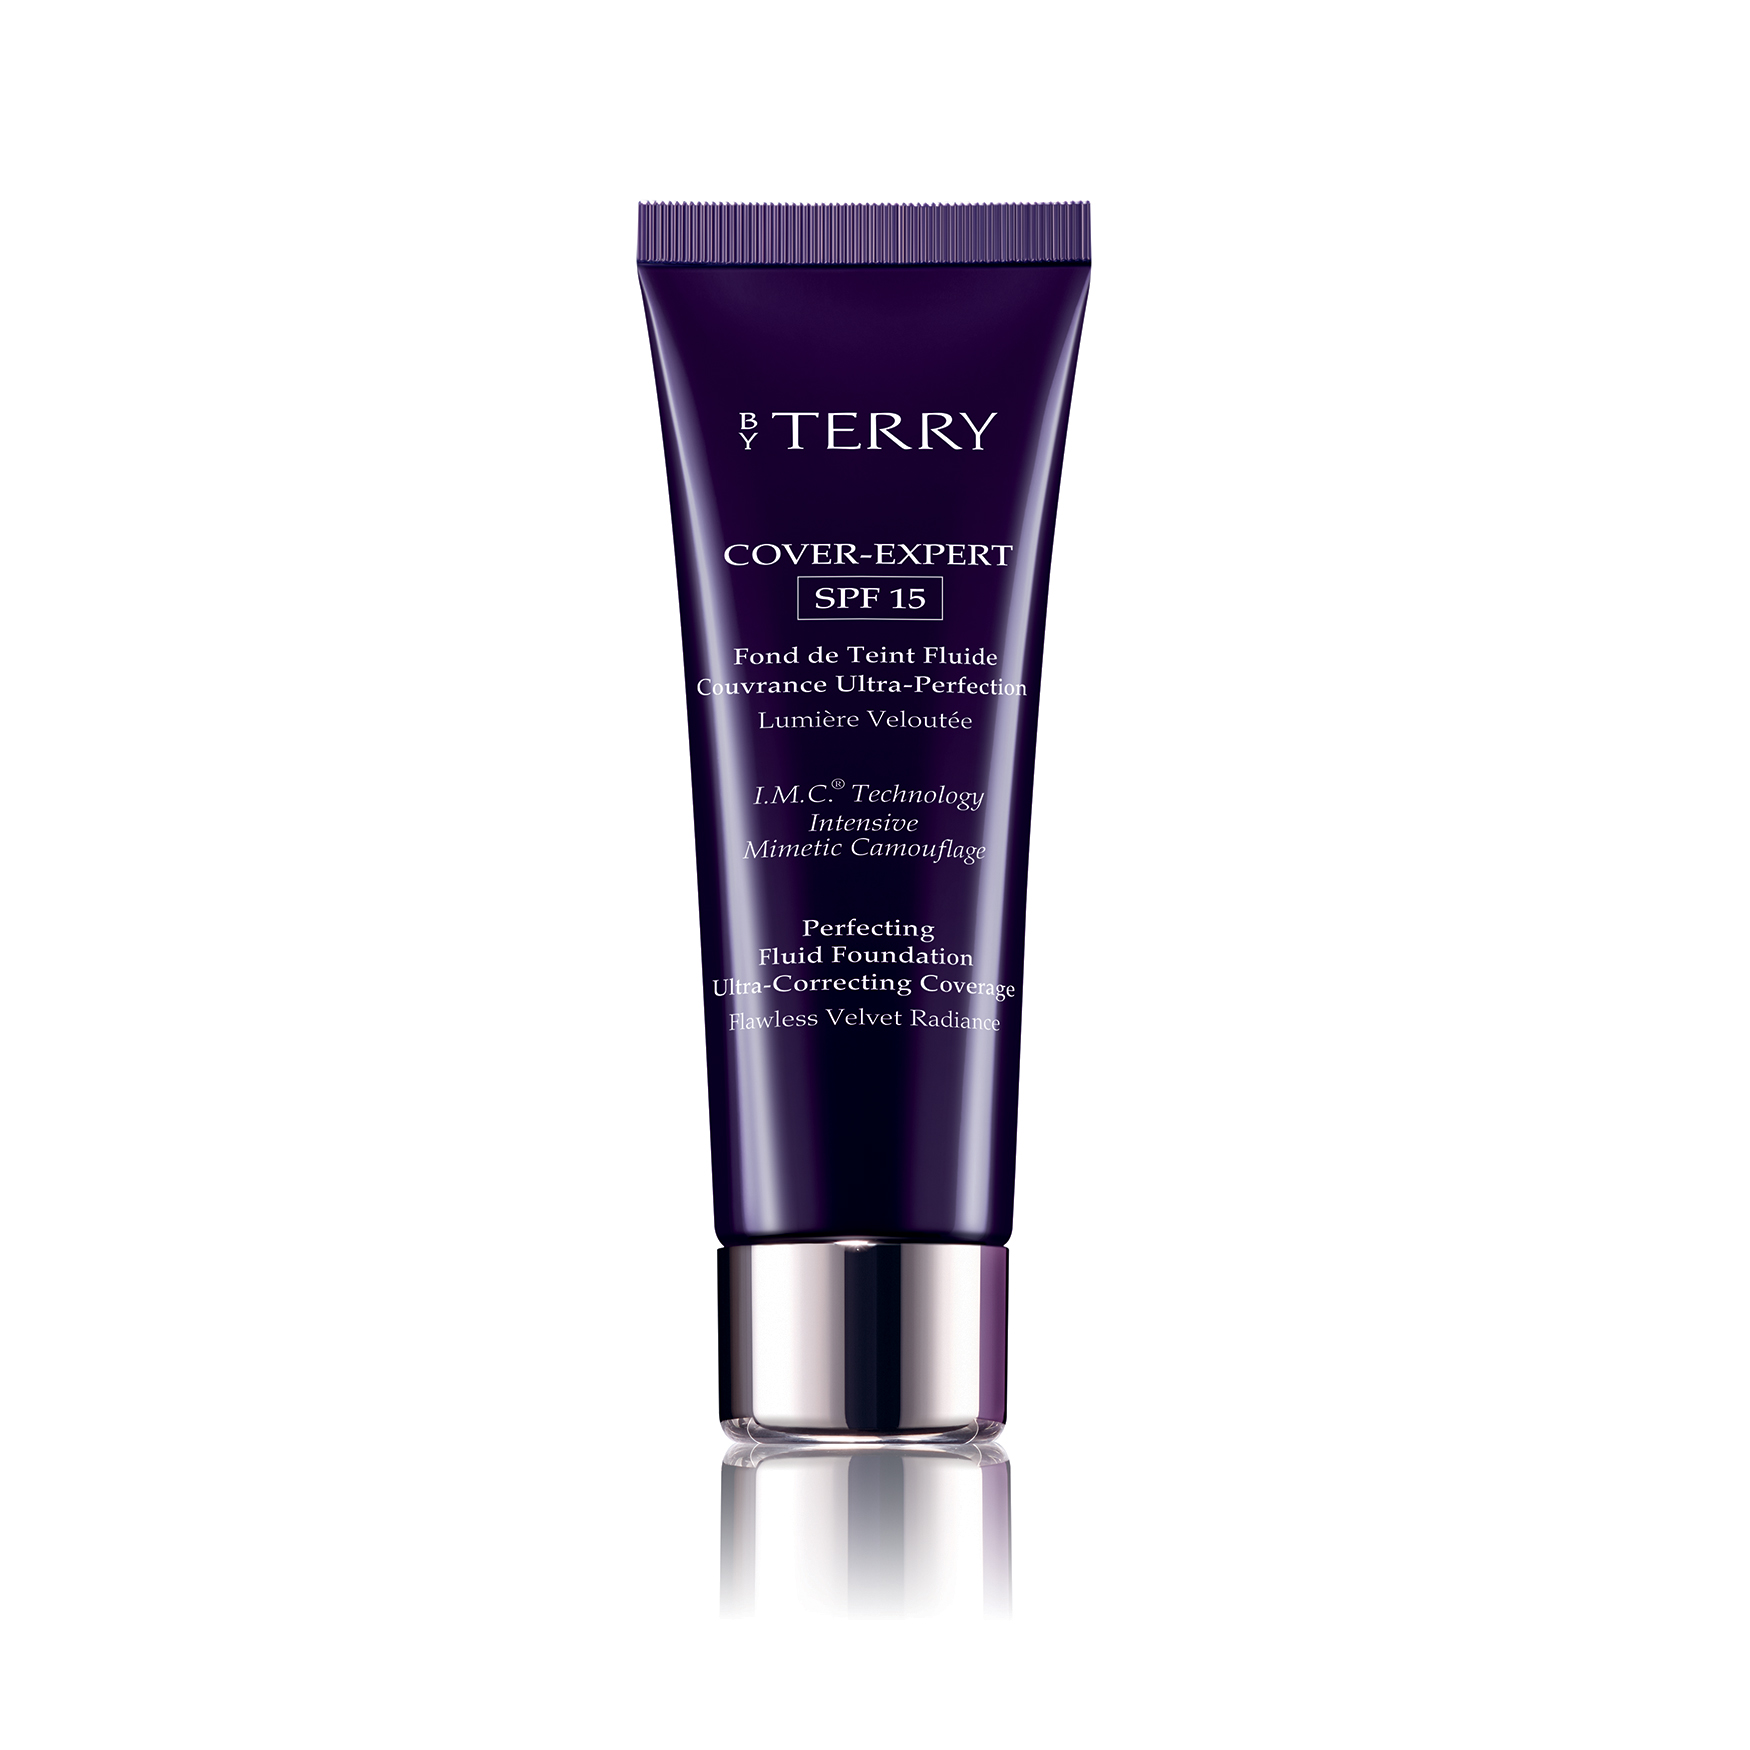 BY TERRY Cover-Expert Perfecting Fluid Foundation   Octer